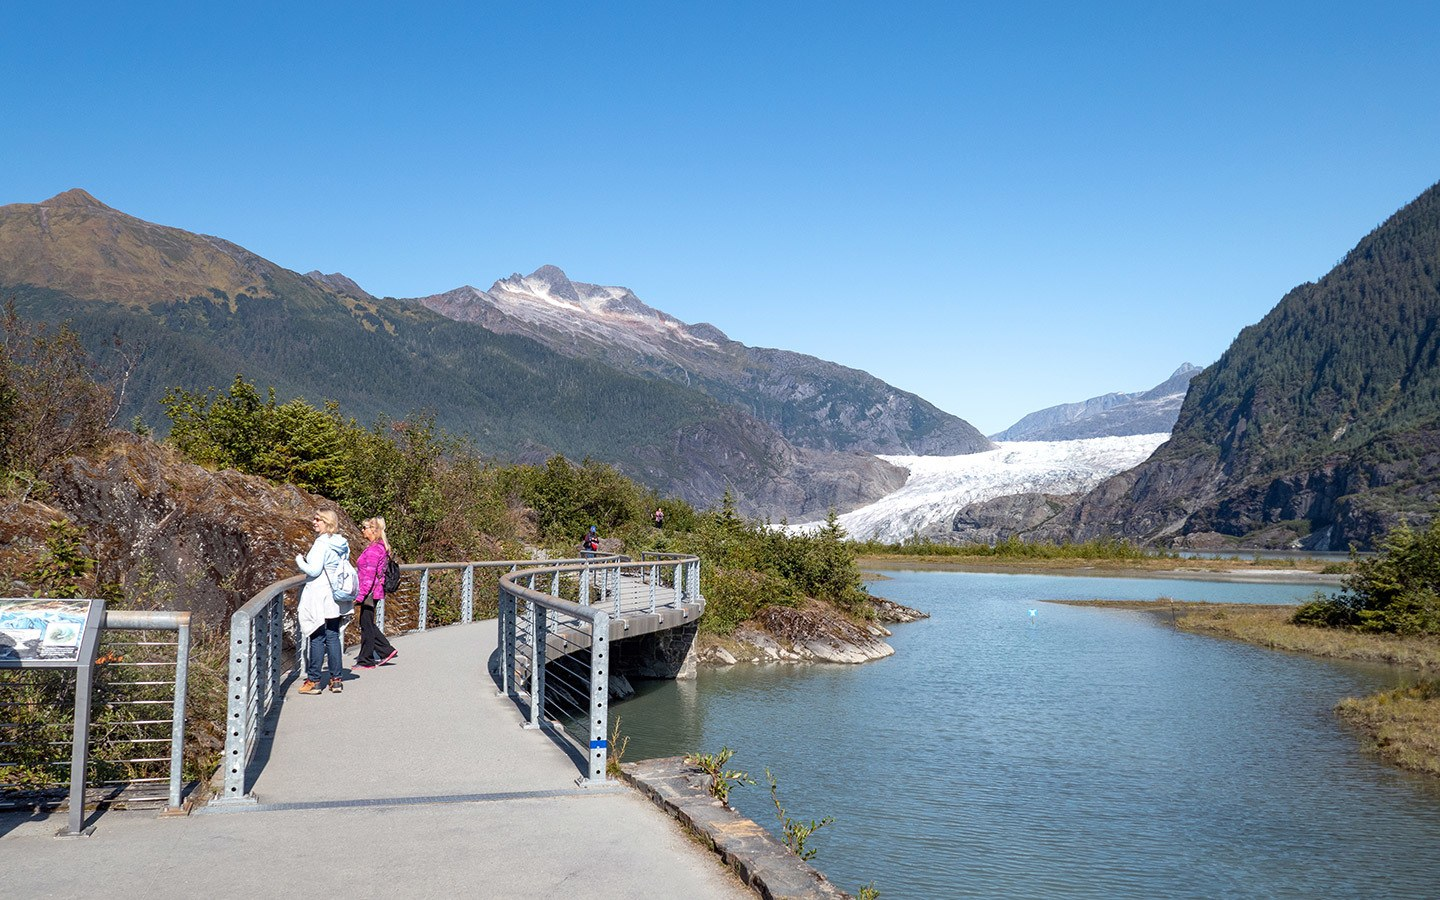 The Mendenhall Glacier near Juneau